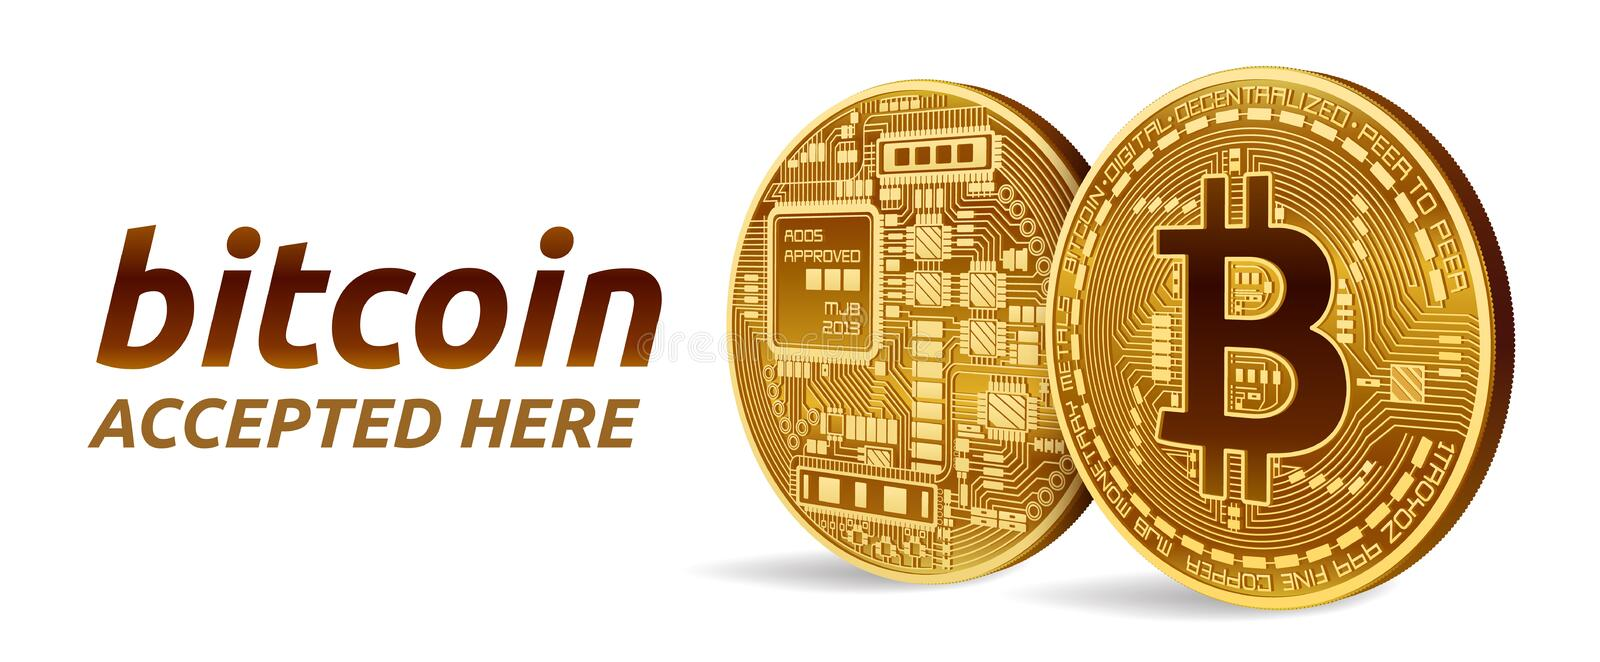 Bitcoin accepted sign emblem. 3D isometric Physical bit coin with text Accepted Here. Crypto currency. Golden coins with bitcoin s royalty free illustration